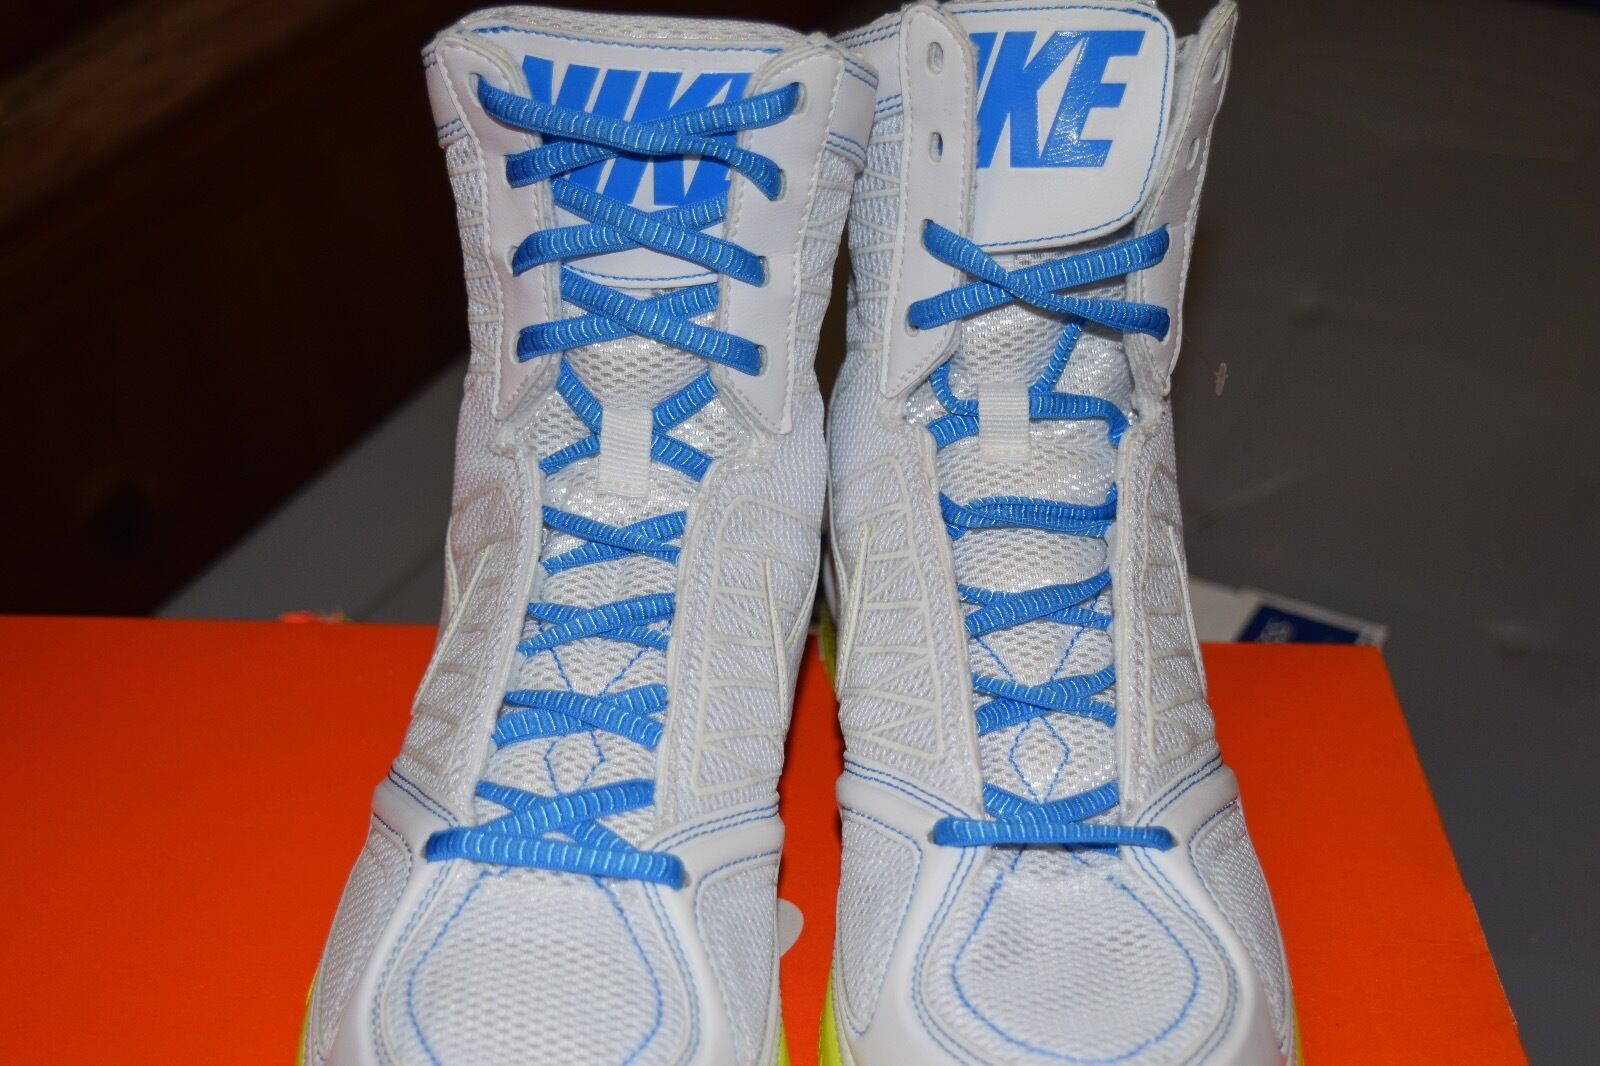 femmes Nike Zoom Bold Sz Sister MD Chaussures blanc vert Bleu Sz Bold 6 or 7.5 45749f